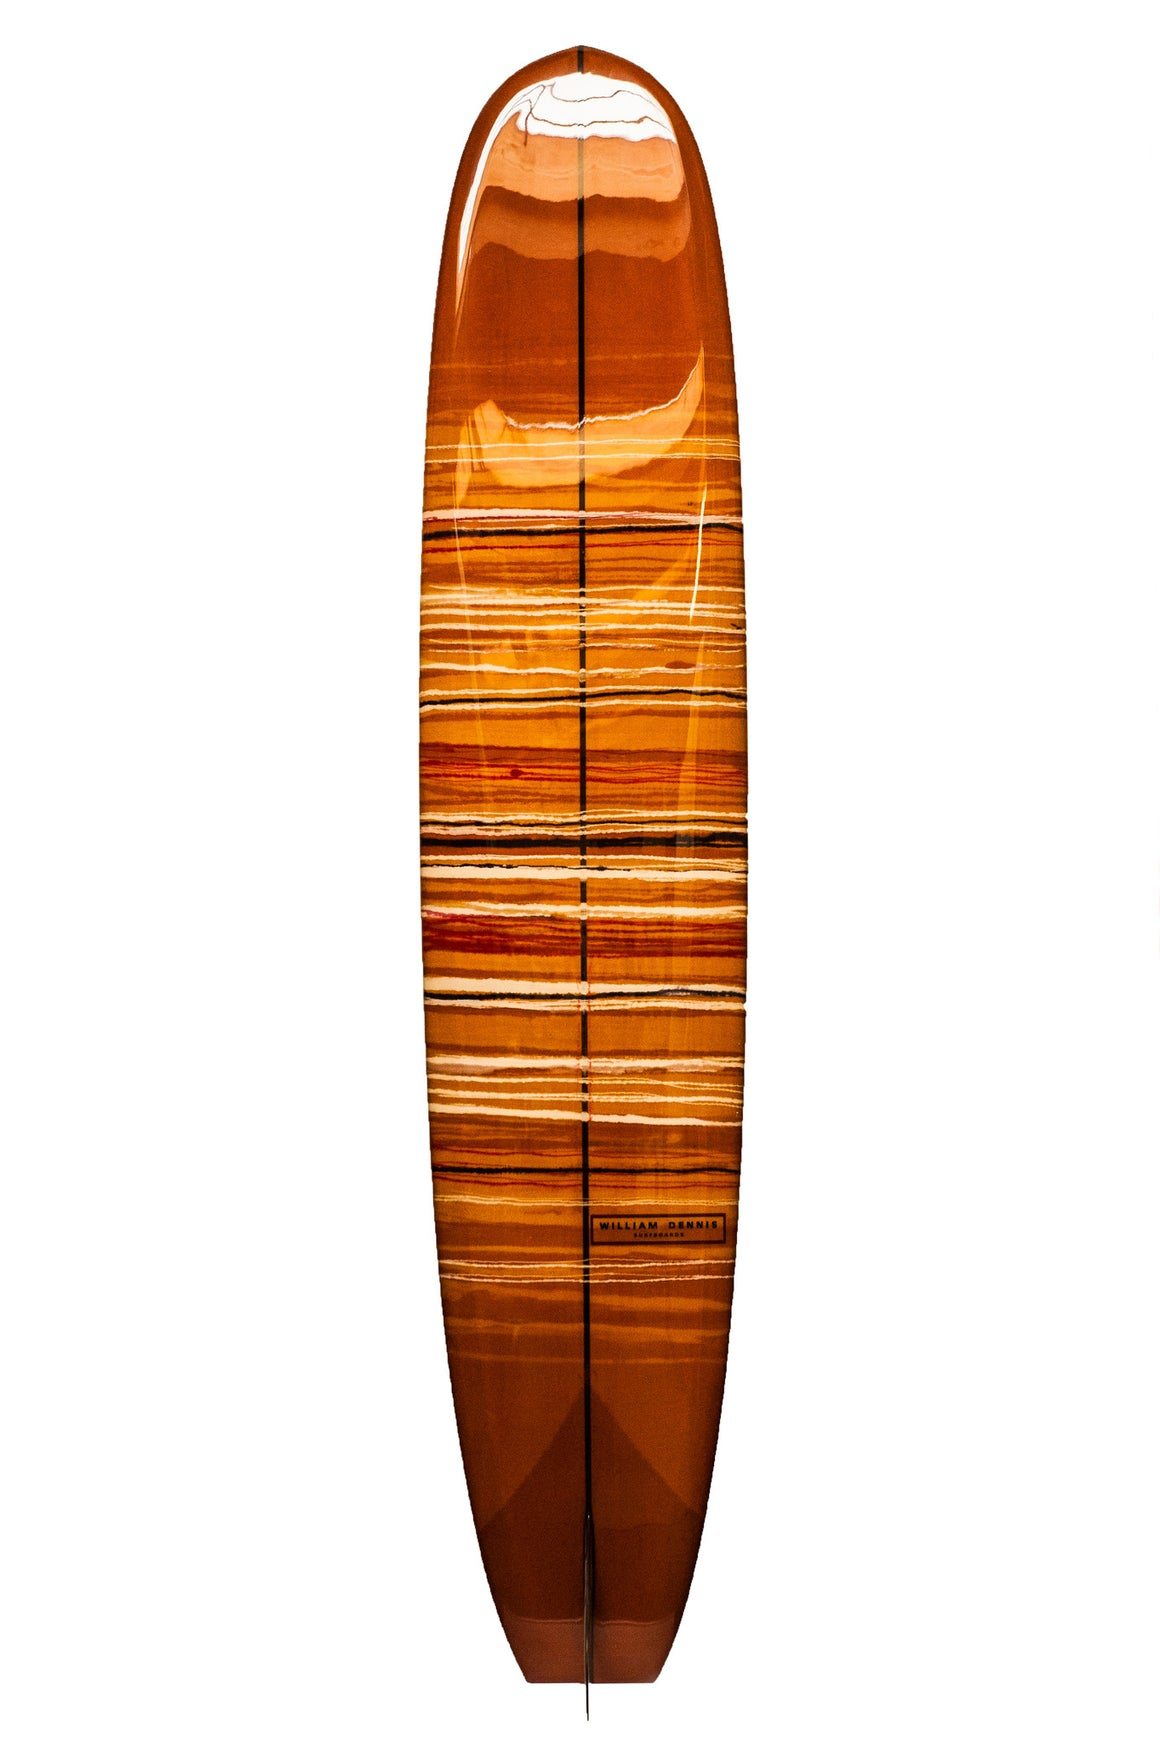 "William Dennis Custom ""Ben Samuel Model"" Longboard Surfboard - Ventura Surf Shop"